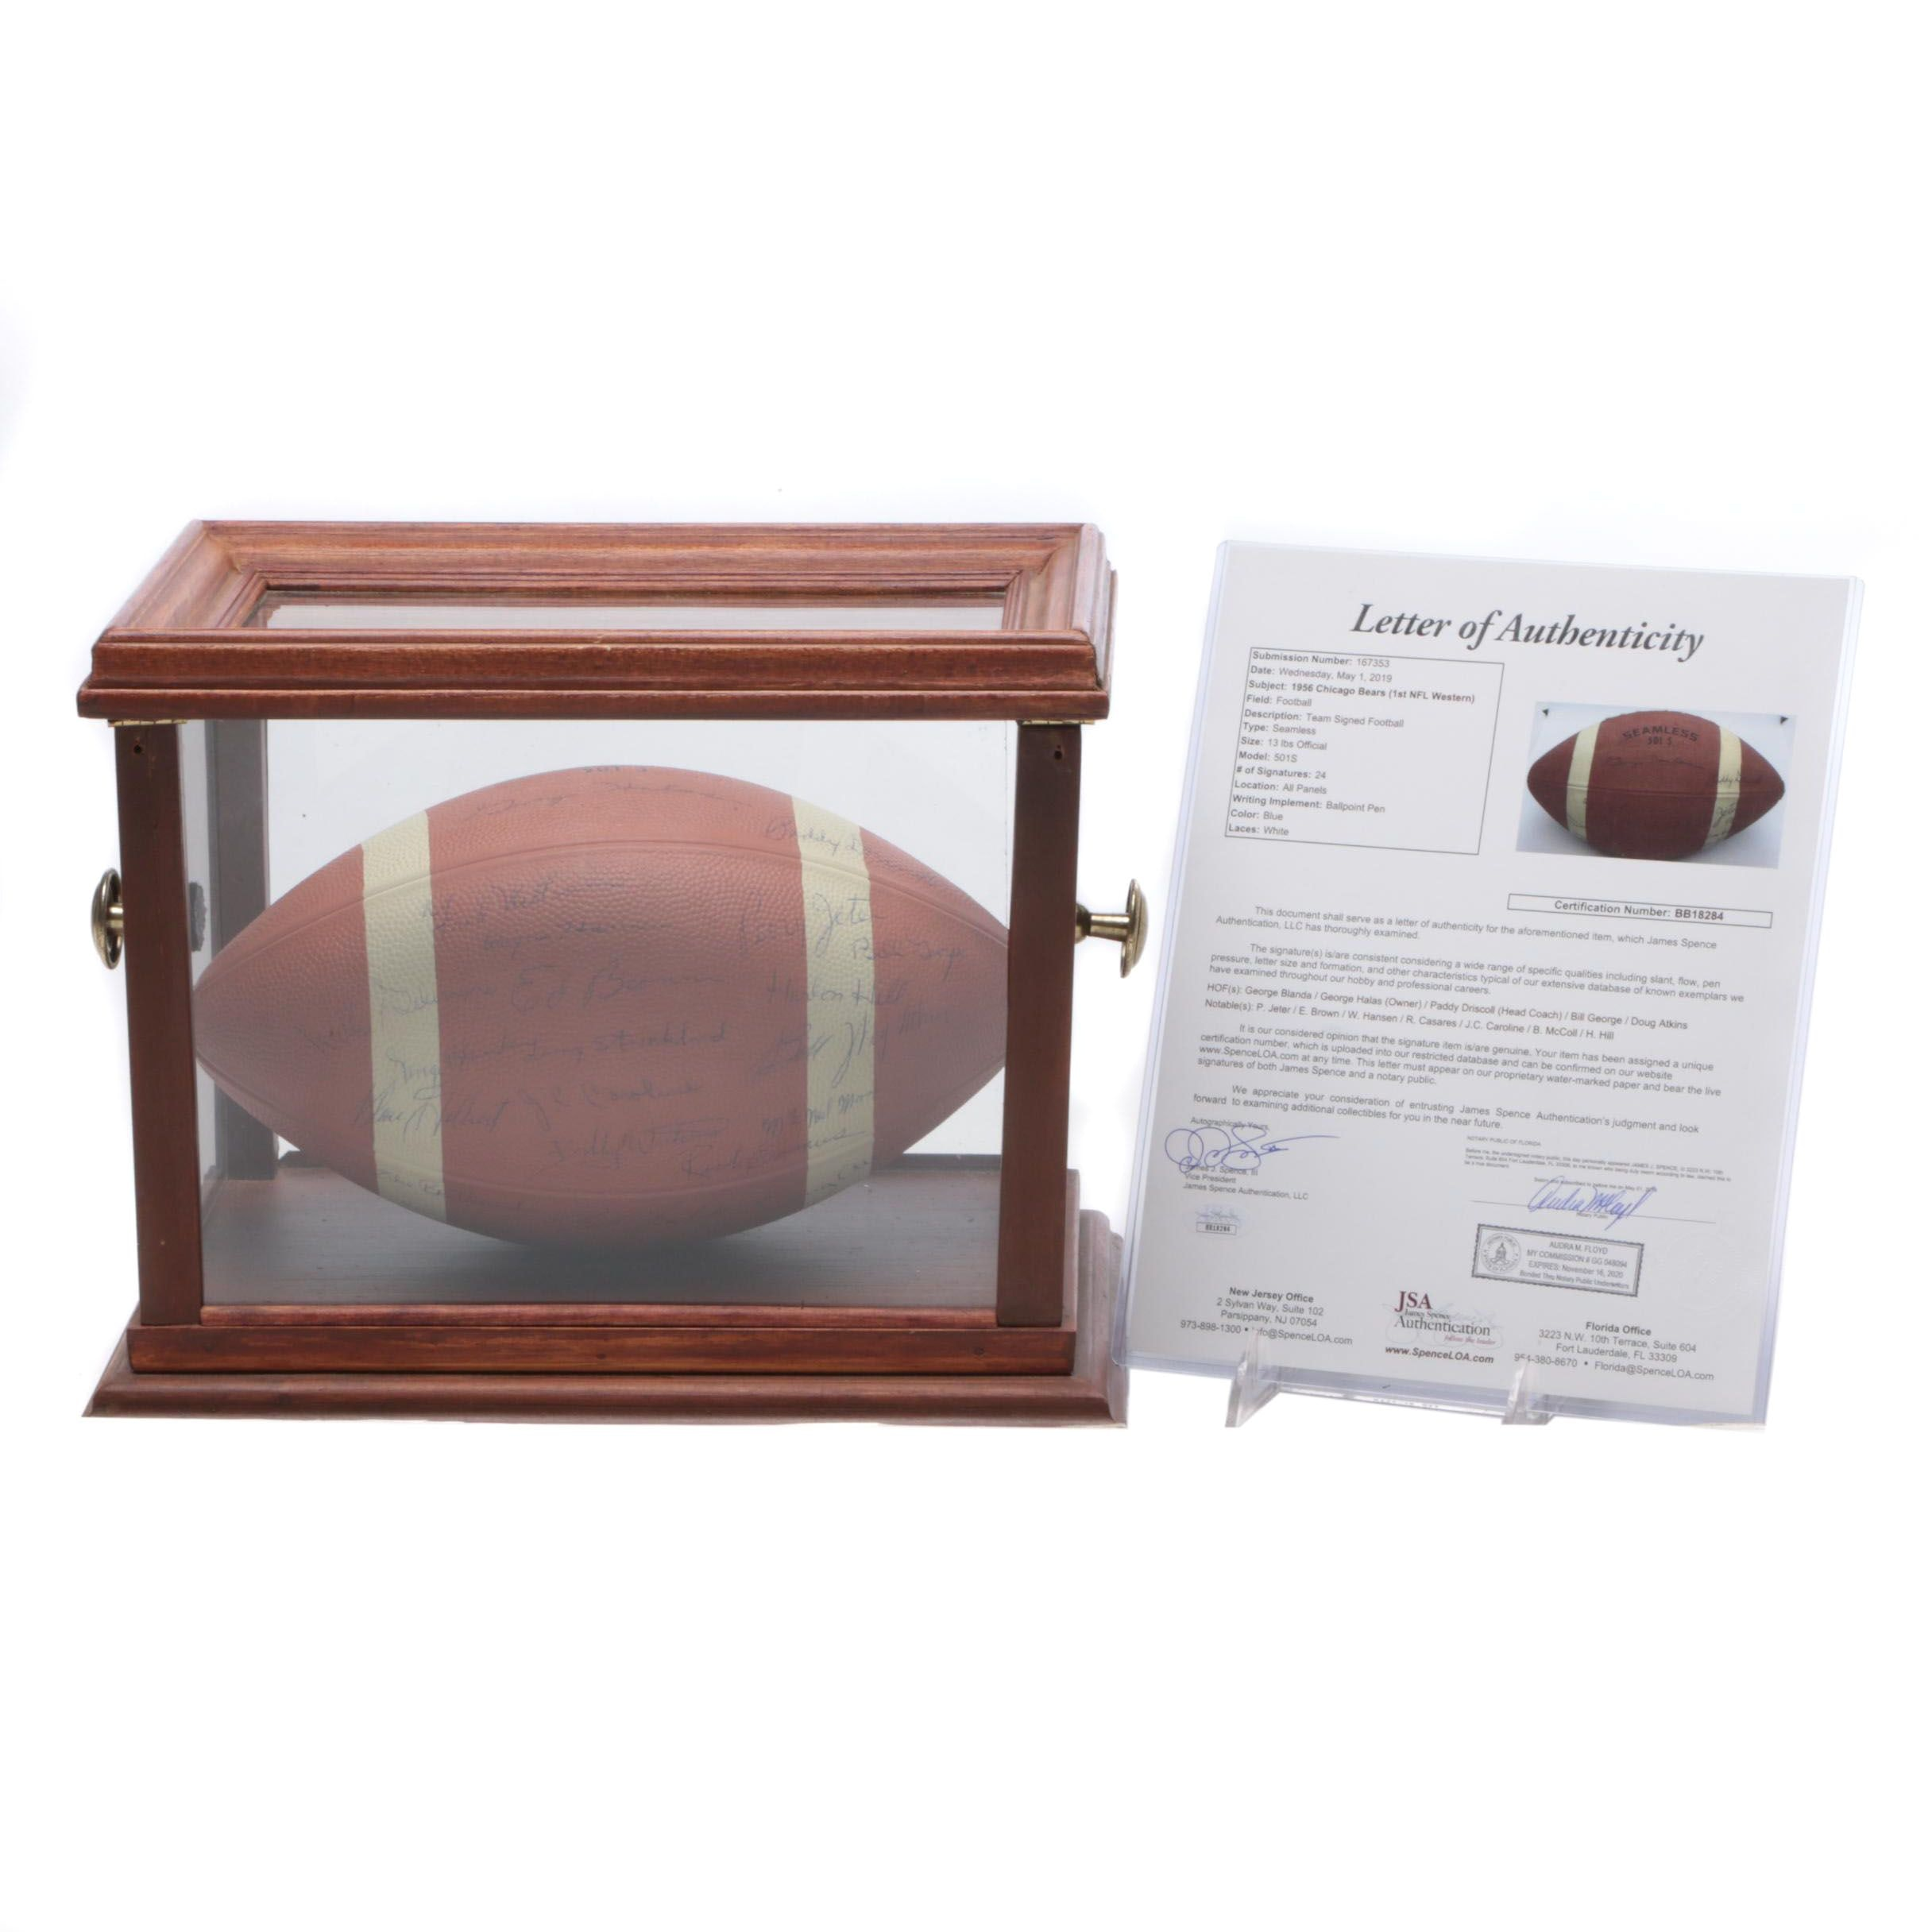 1956 Chicago Bears NFL Team Signed Football with George Hallas, JSA Full Letter